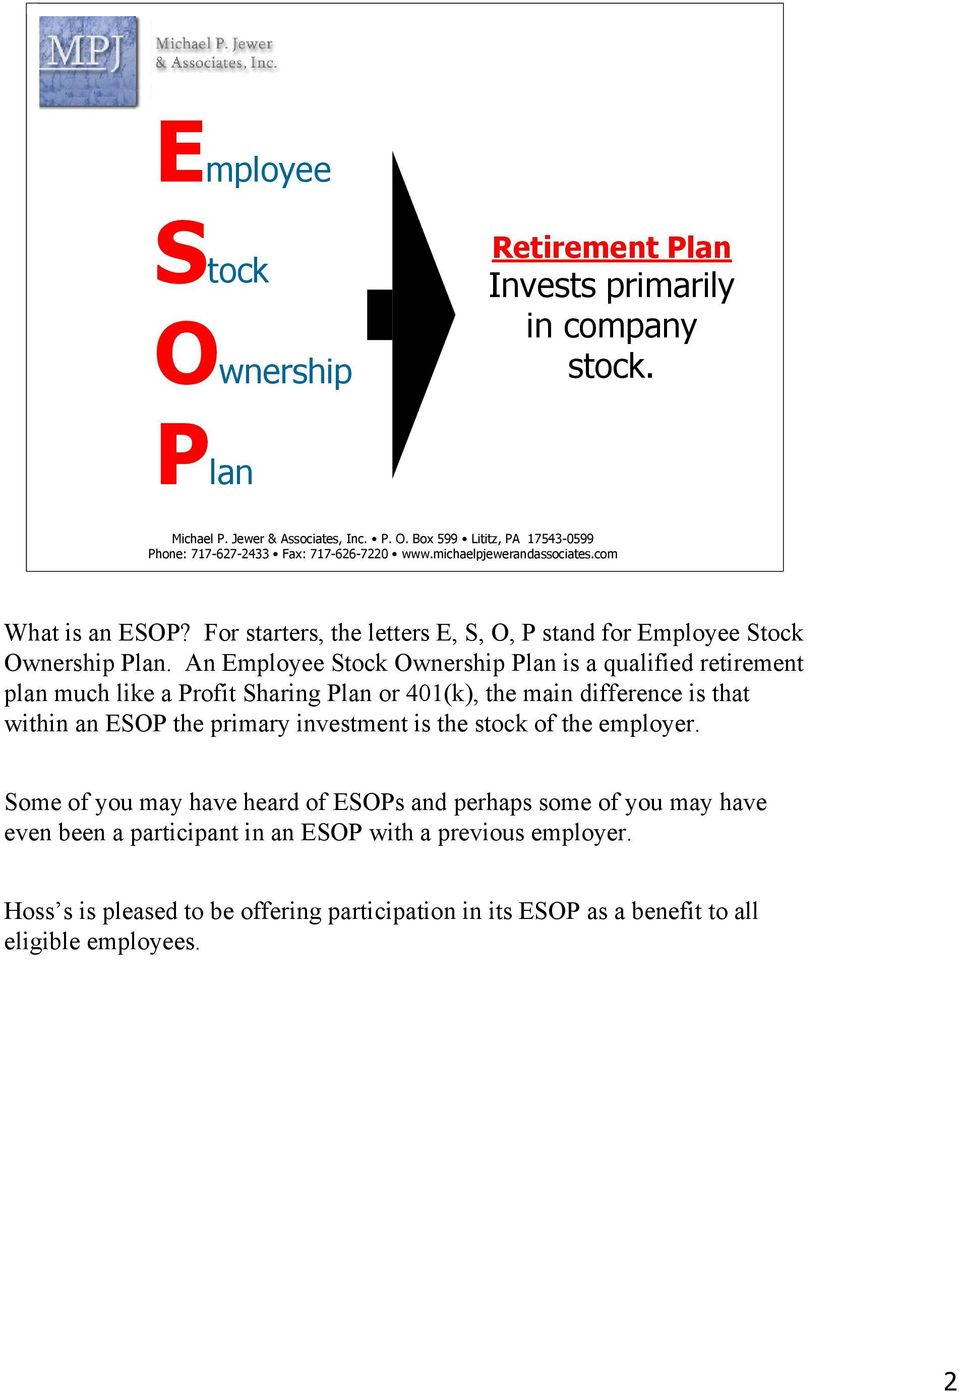 An Employee Stock Ownership Plan is a qualified retirement plan much like a Profit Sharing Plan or 401(k), the main difference is that within an ESOP the primary investment is the stock of